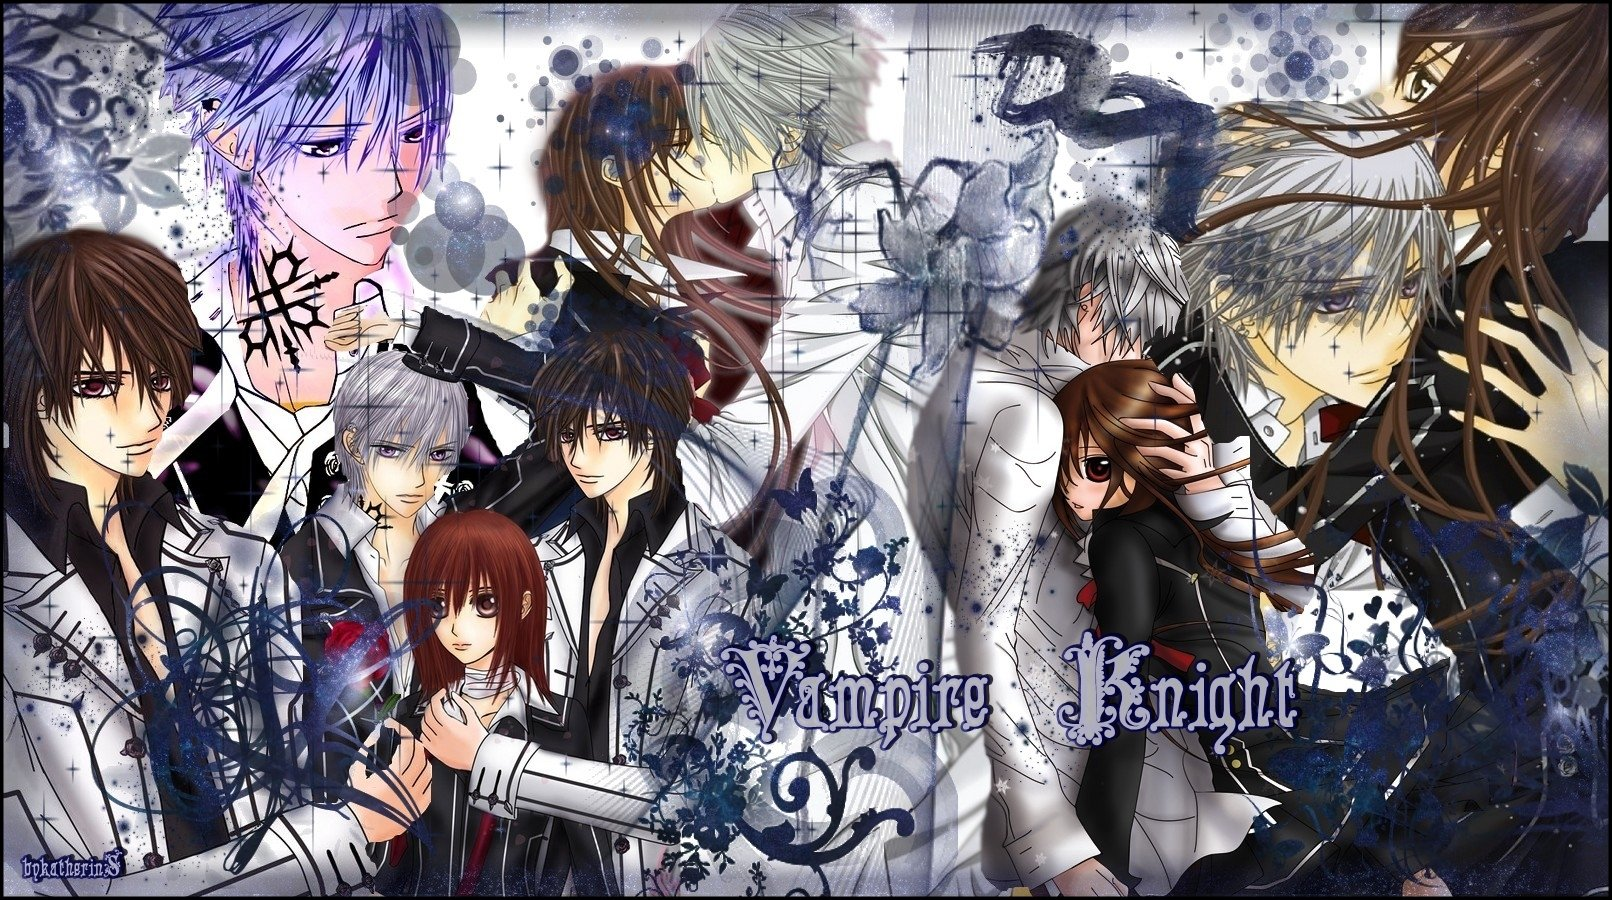 Image Result For Anime Wallpaper Vampire Knight